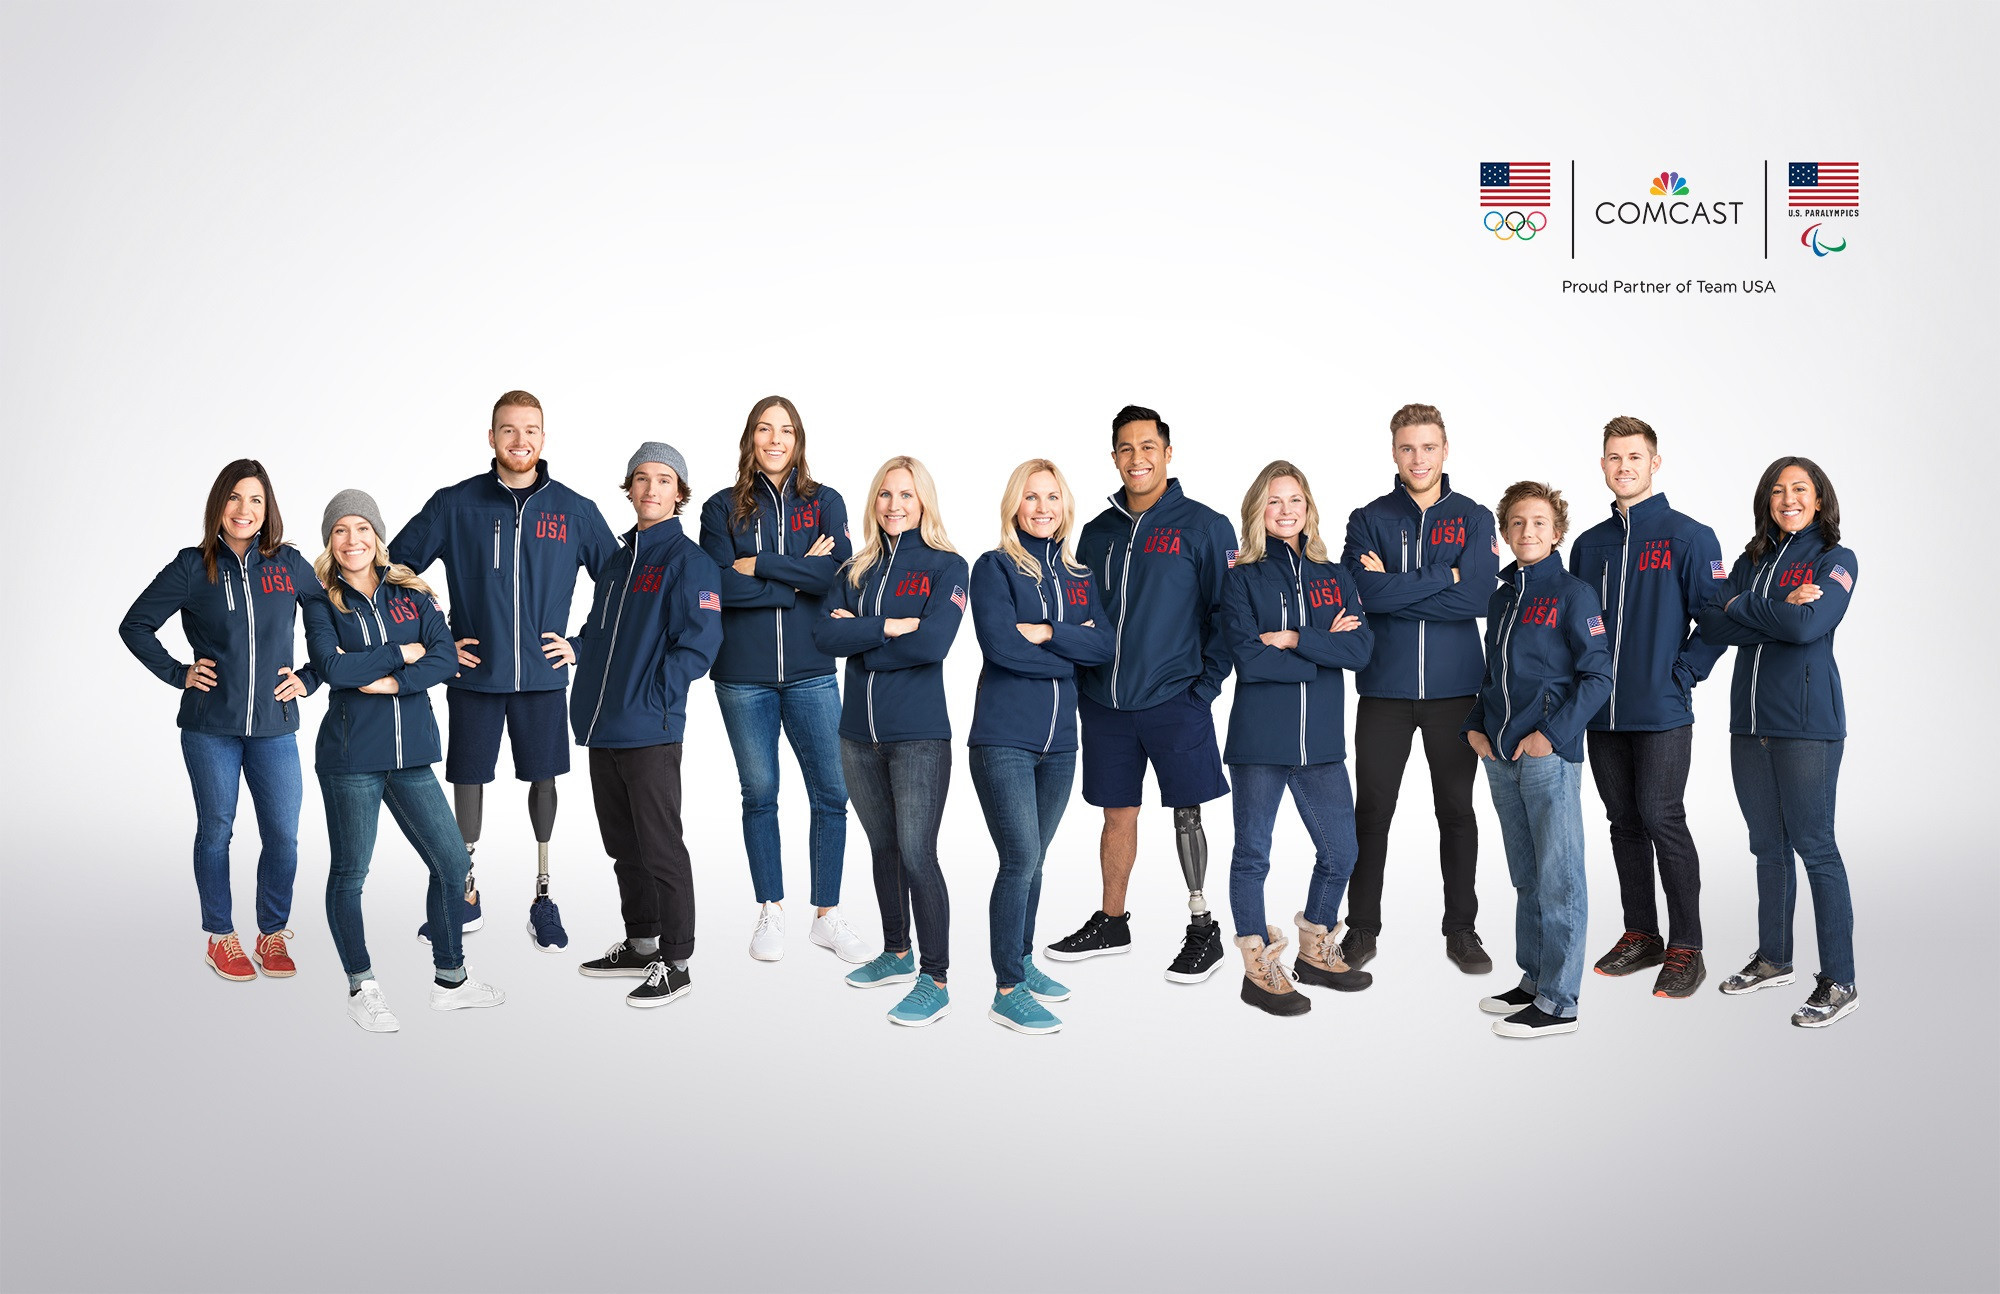 Comcast announce support of 13 Team USA athletes before Pyeongchang 2018